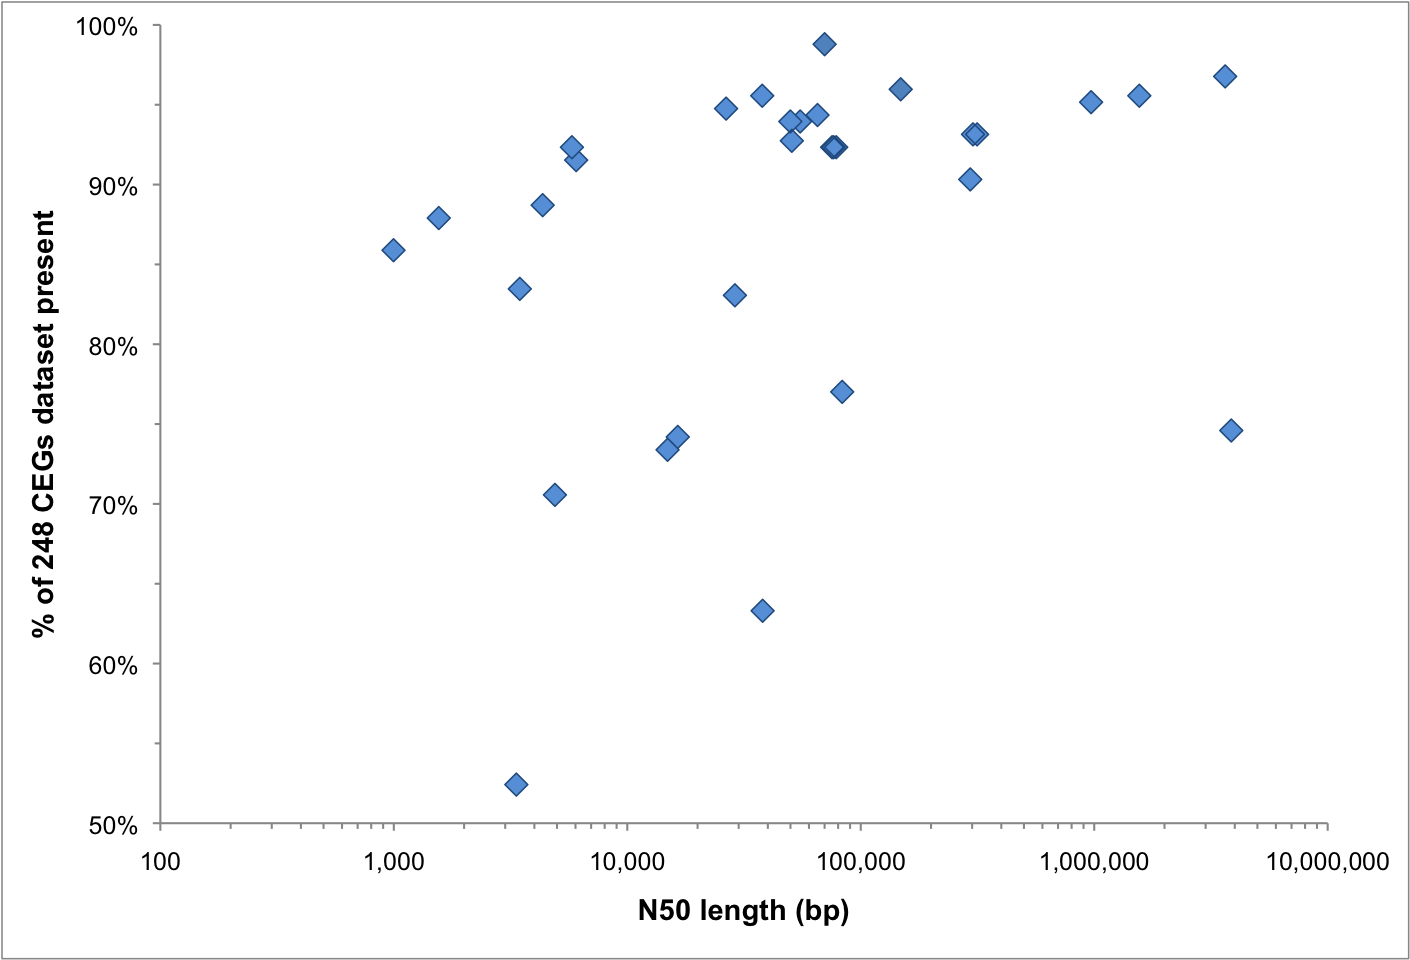 Figure 1. CEGMA results vs N50 length for 32 genome assemblies. Click to enlarge.